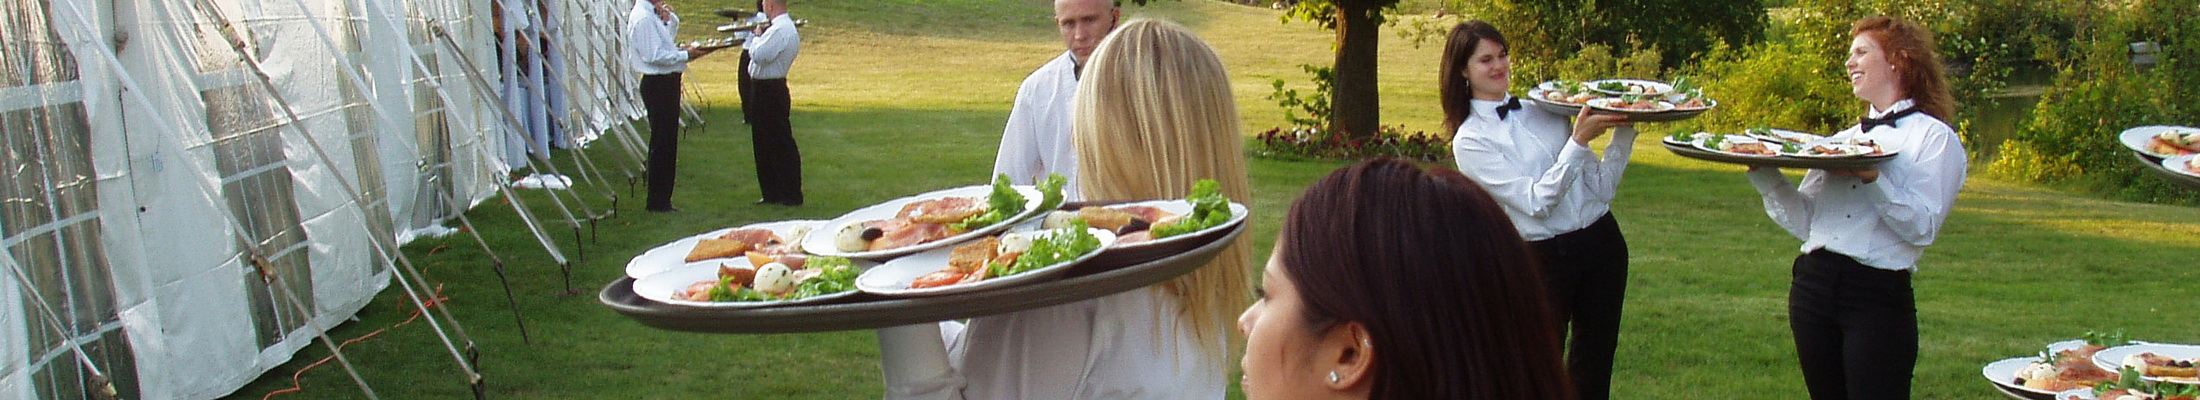 Caledon wedding catering waiters with plated course